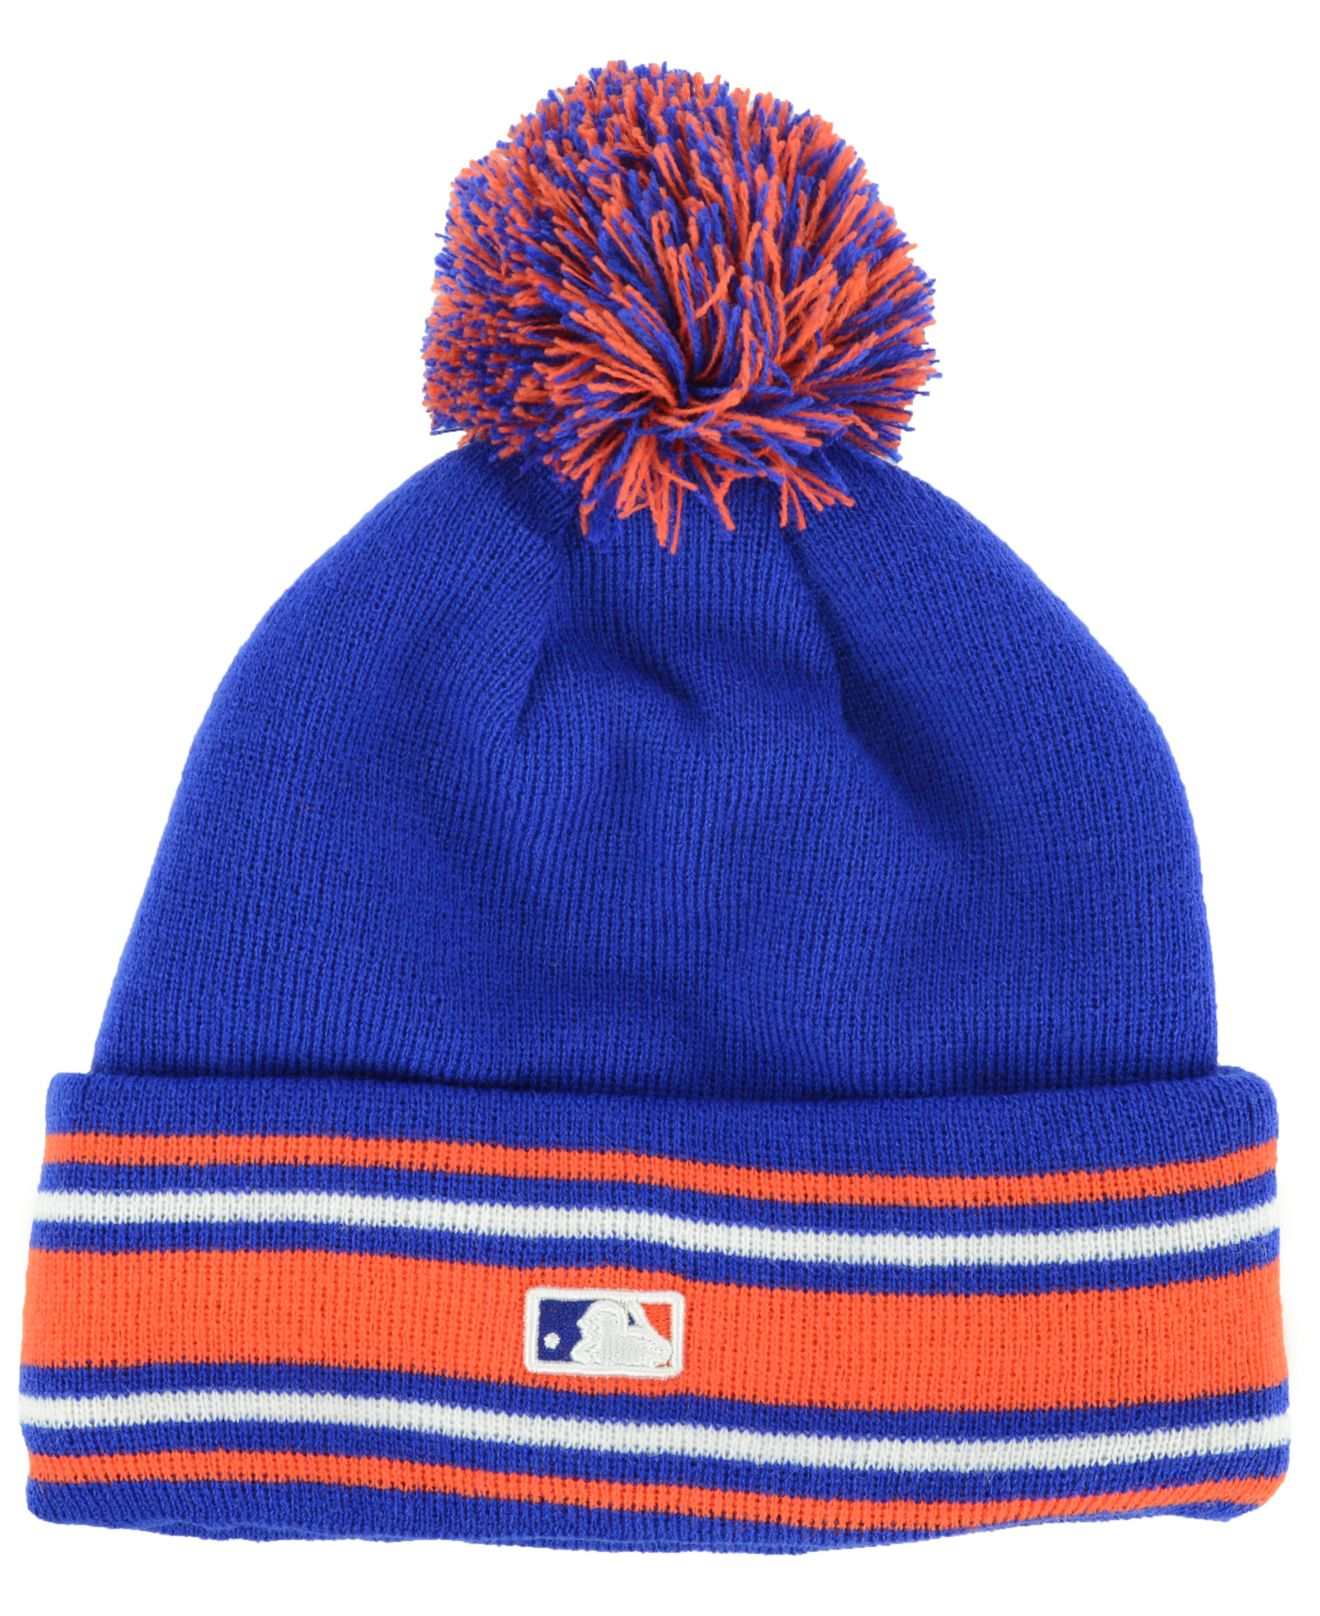 in stock 50809 755bc purchase new era houston astros mlb ne17 sport knit hat with pom aa503  65d22  coupon code for lyst ktz new york mets mlb ac knit in blue for men  74dcd